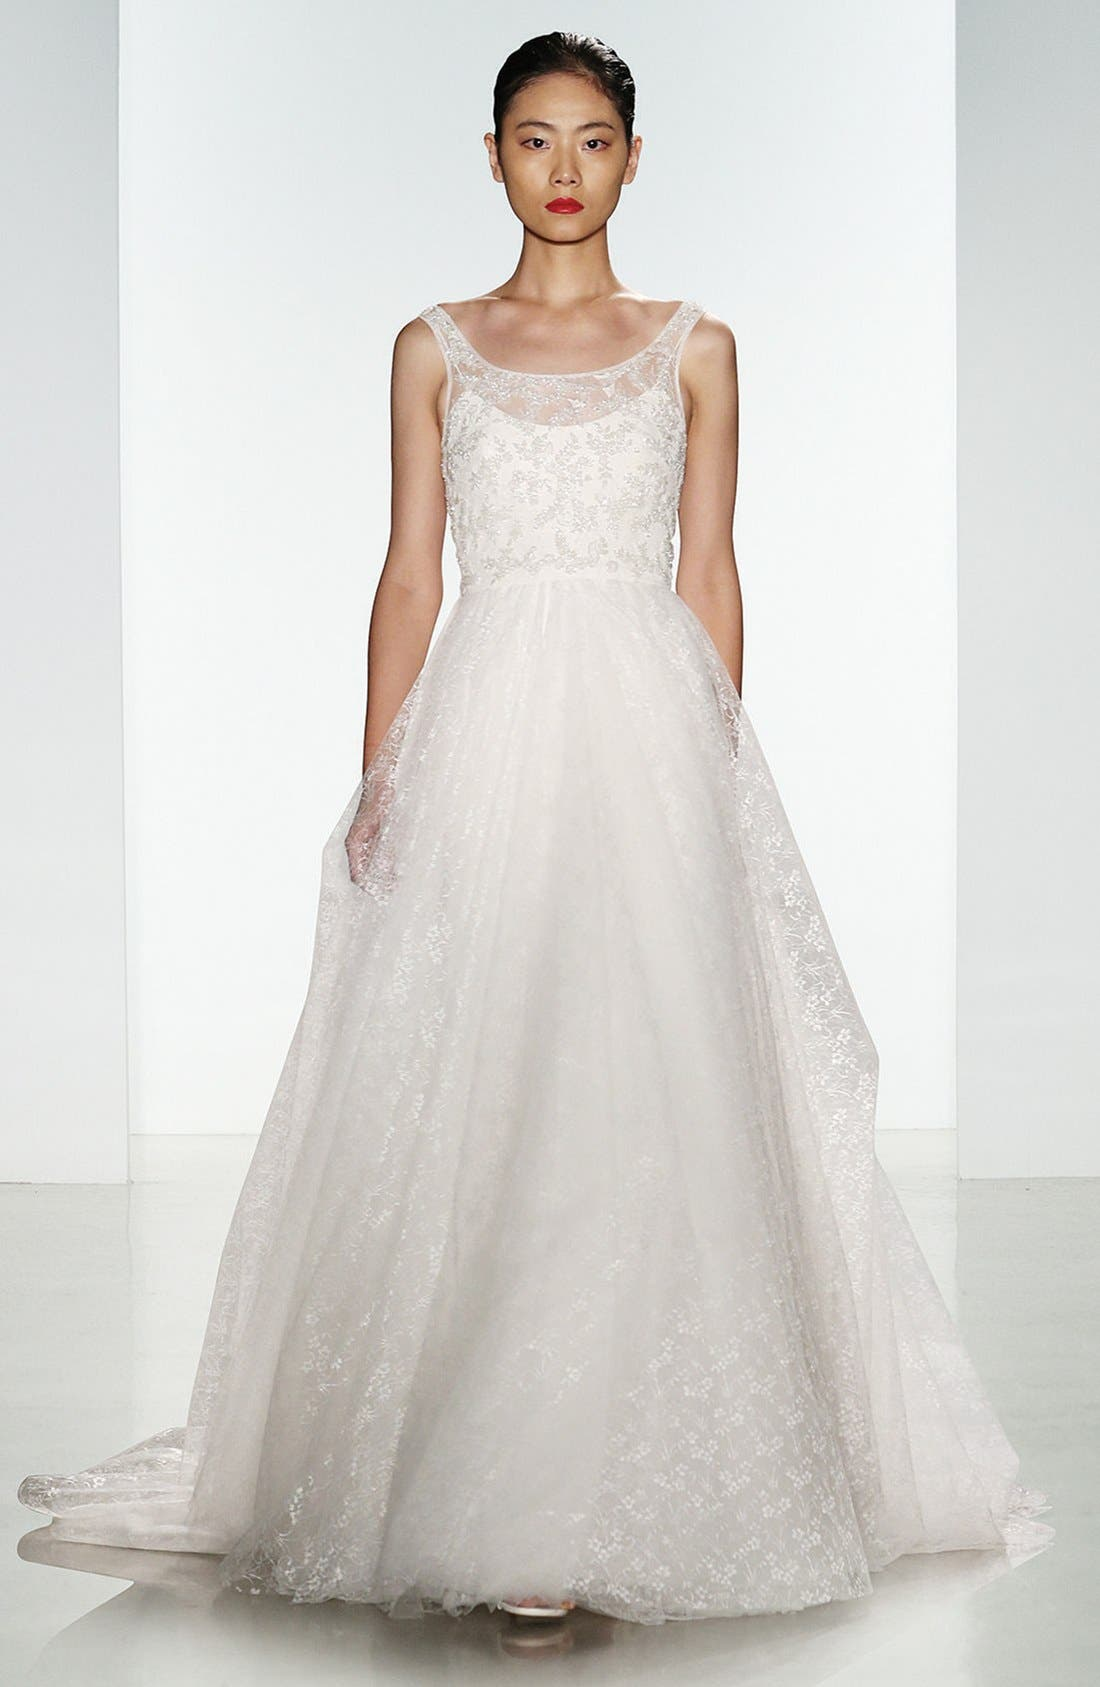 Claire Beaded Chantilly Lace & Floral Tulle Ballgown,                             Alternate thumbnail 6, color,                             900